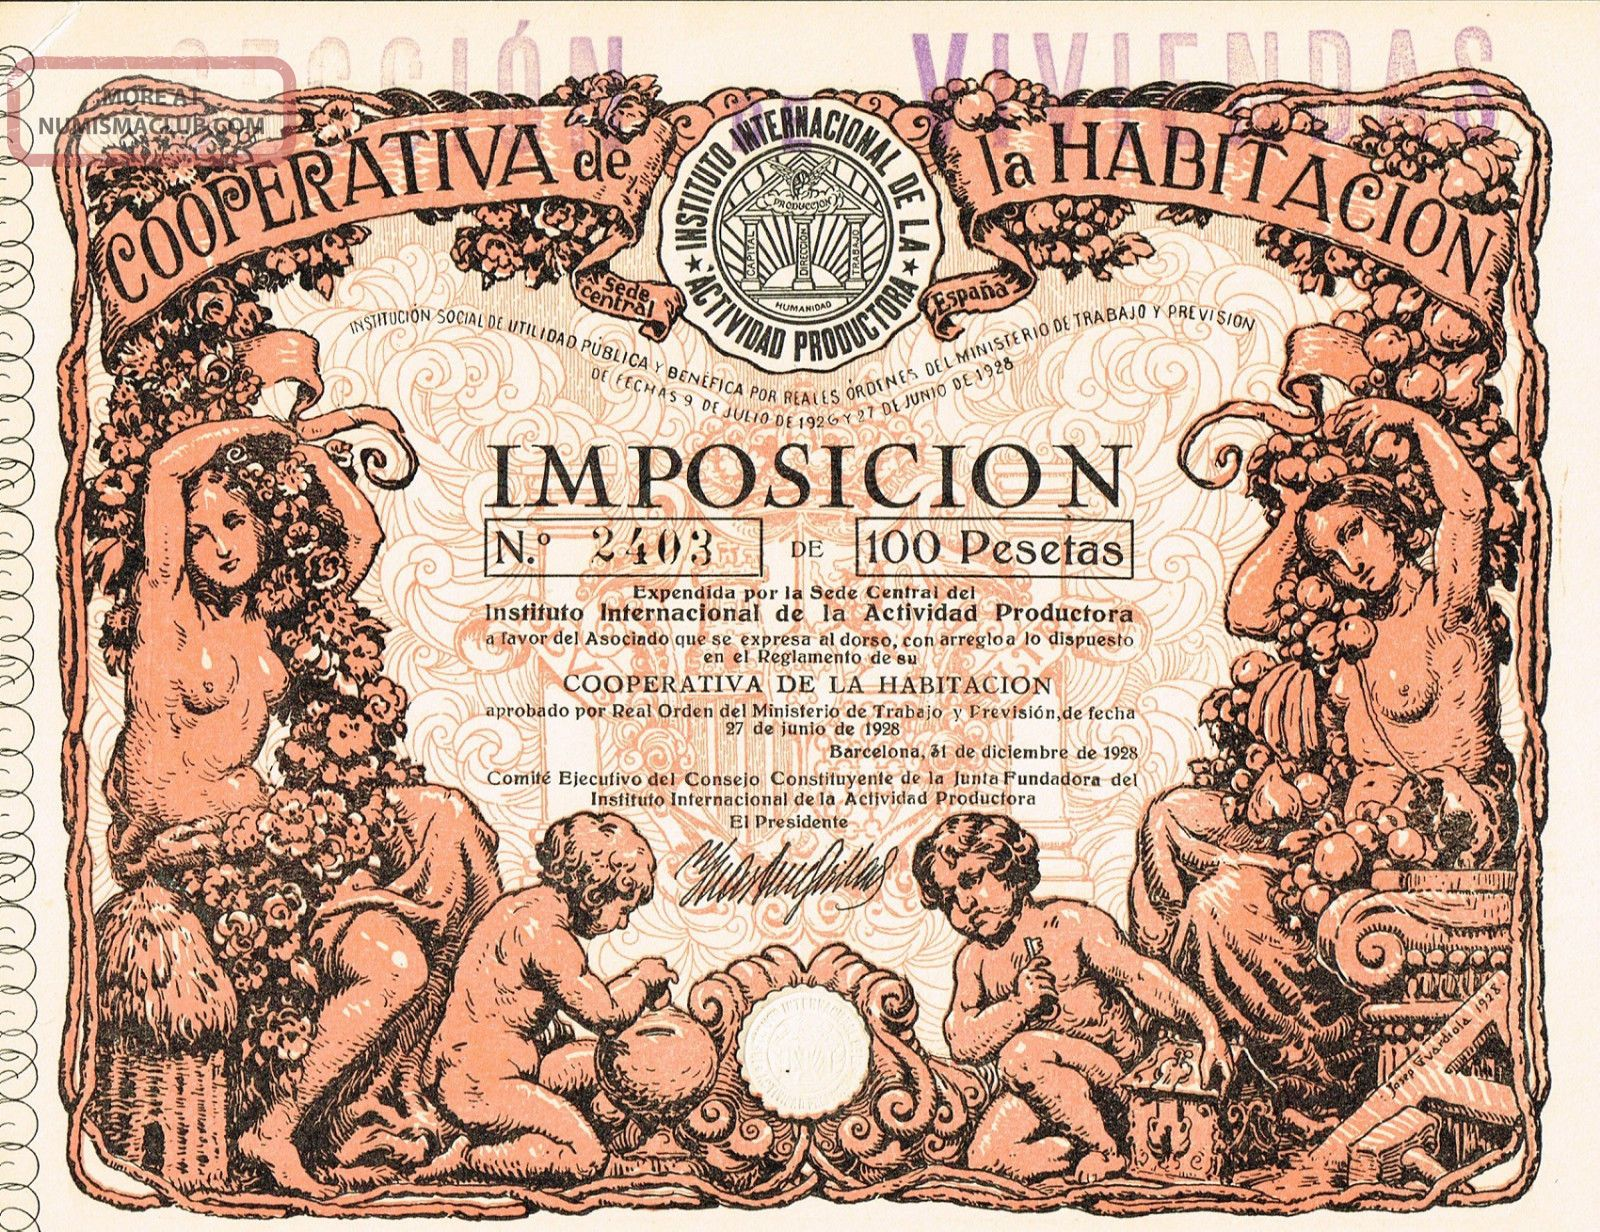 Spain Coopertiva Habitacion Stock Certificate 1928 Taxation World photo